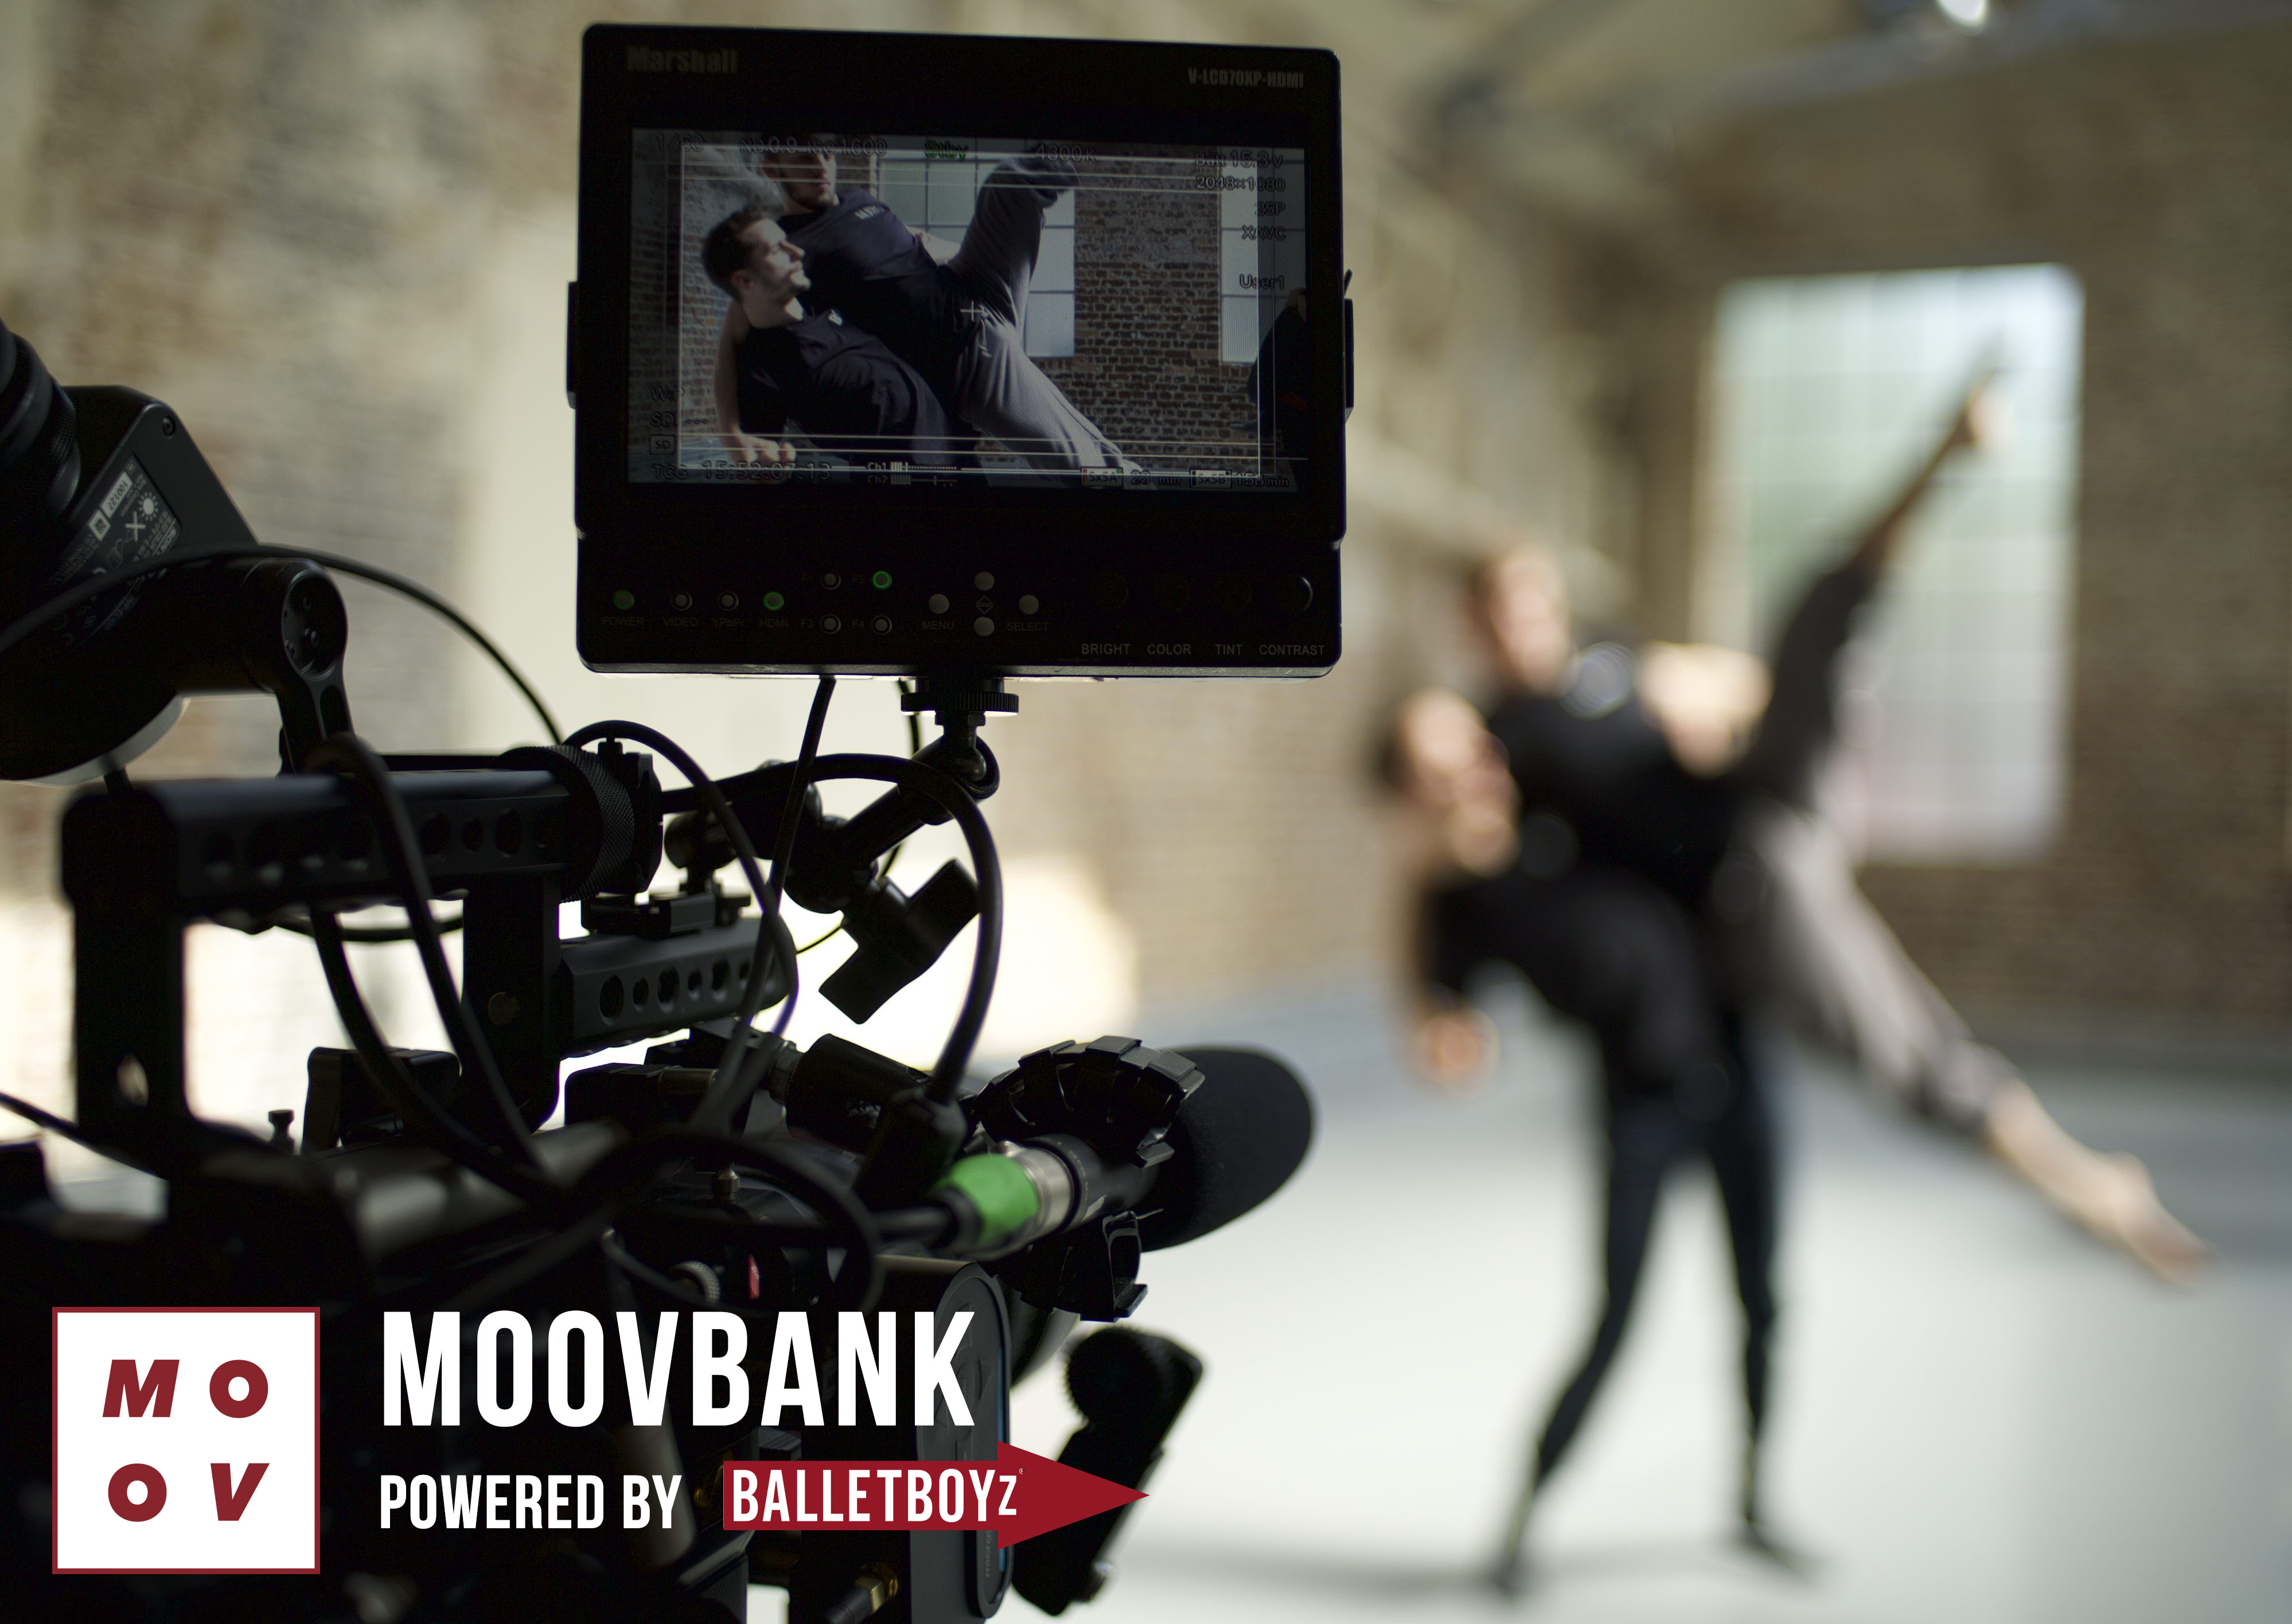 Arts Award opportunities for young people offered through new digital resource, MoovBank from BalletBoyz